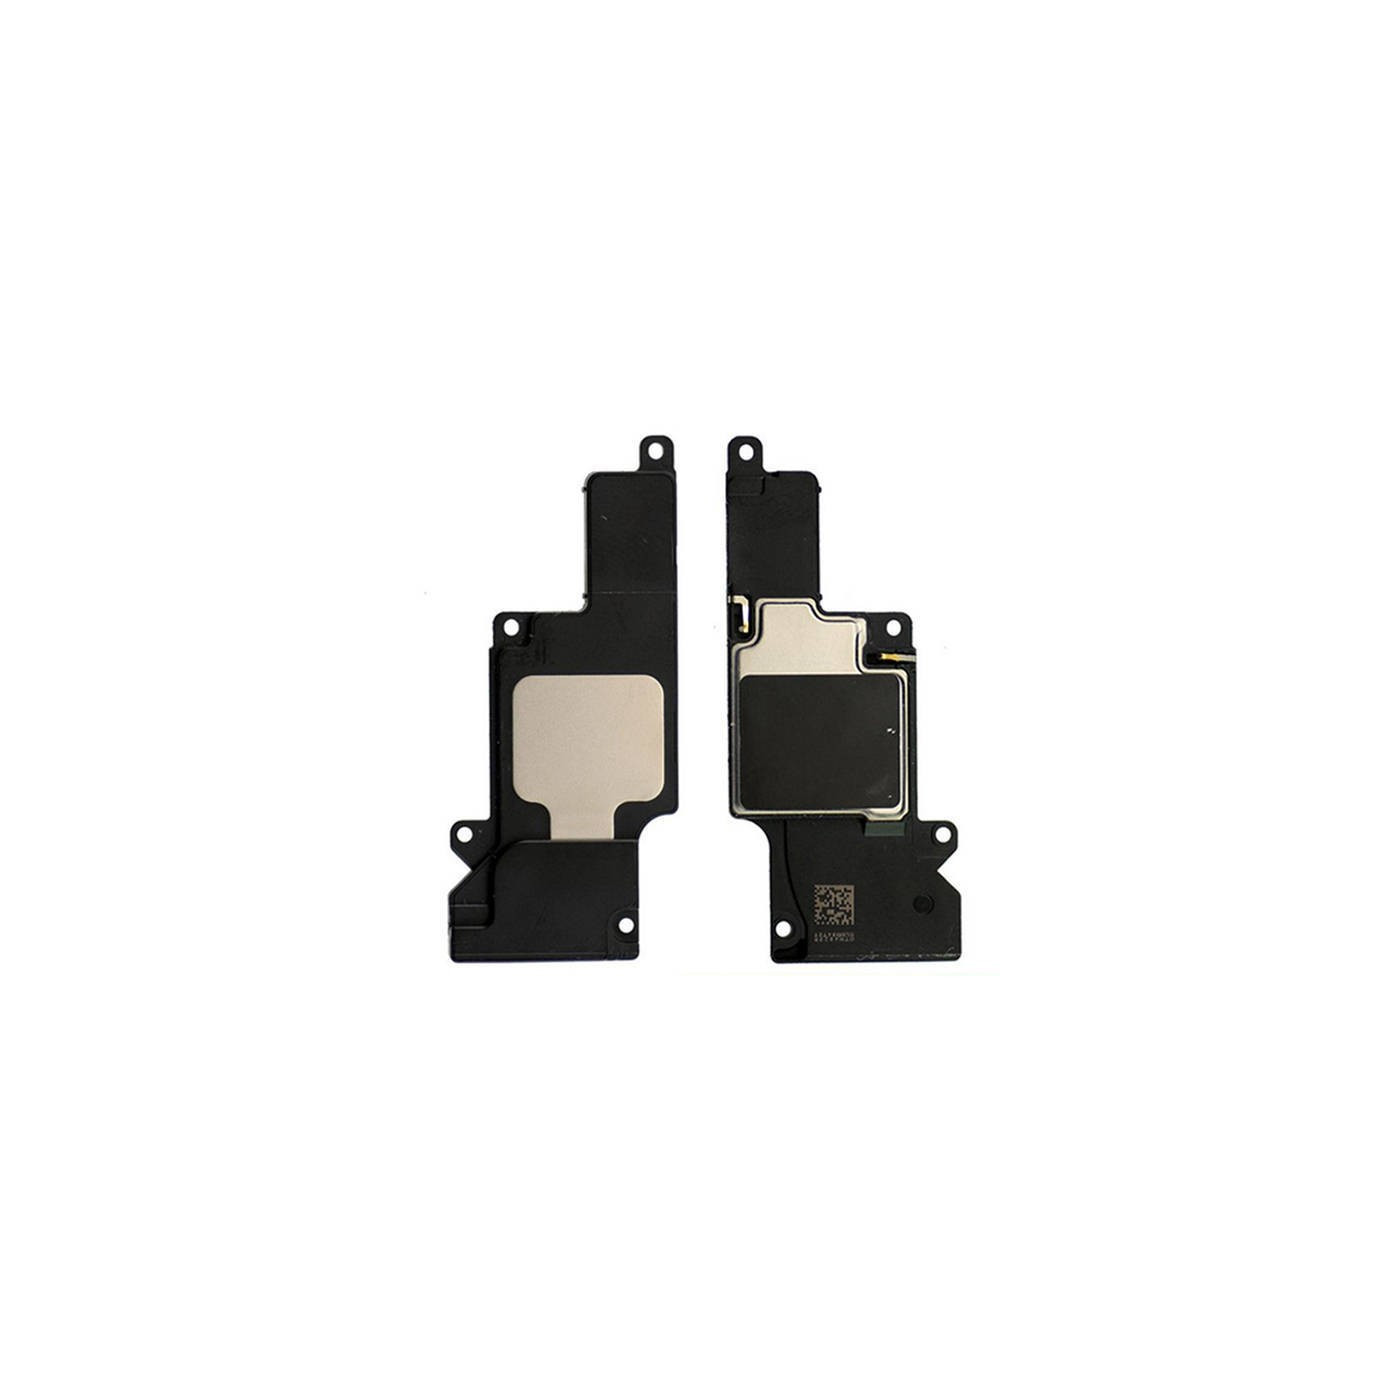 Altoparlante inferiore per iphone 6 Plus Loud speaker buzzer ricambio casse